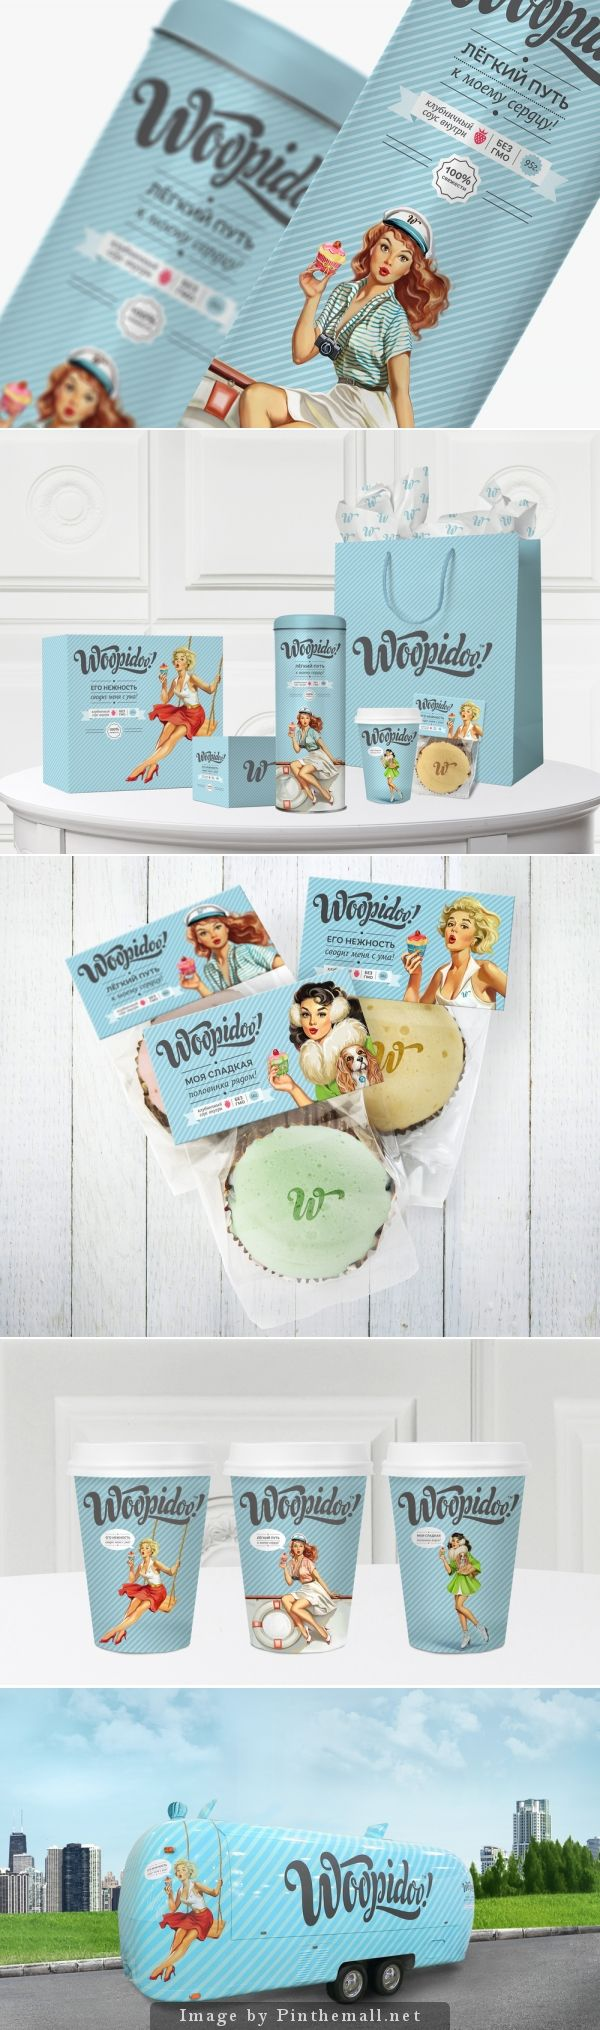 Woopidoo | combines both a modern and vintage feel to their baked goods #cakes #packaging designed by Times Branding